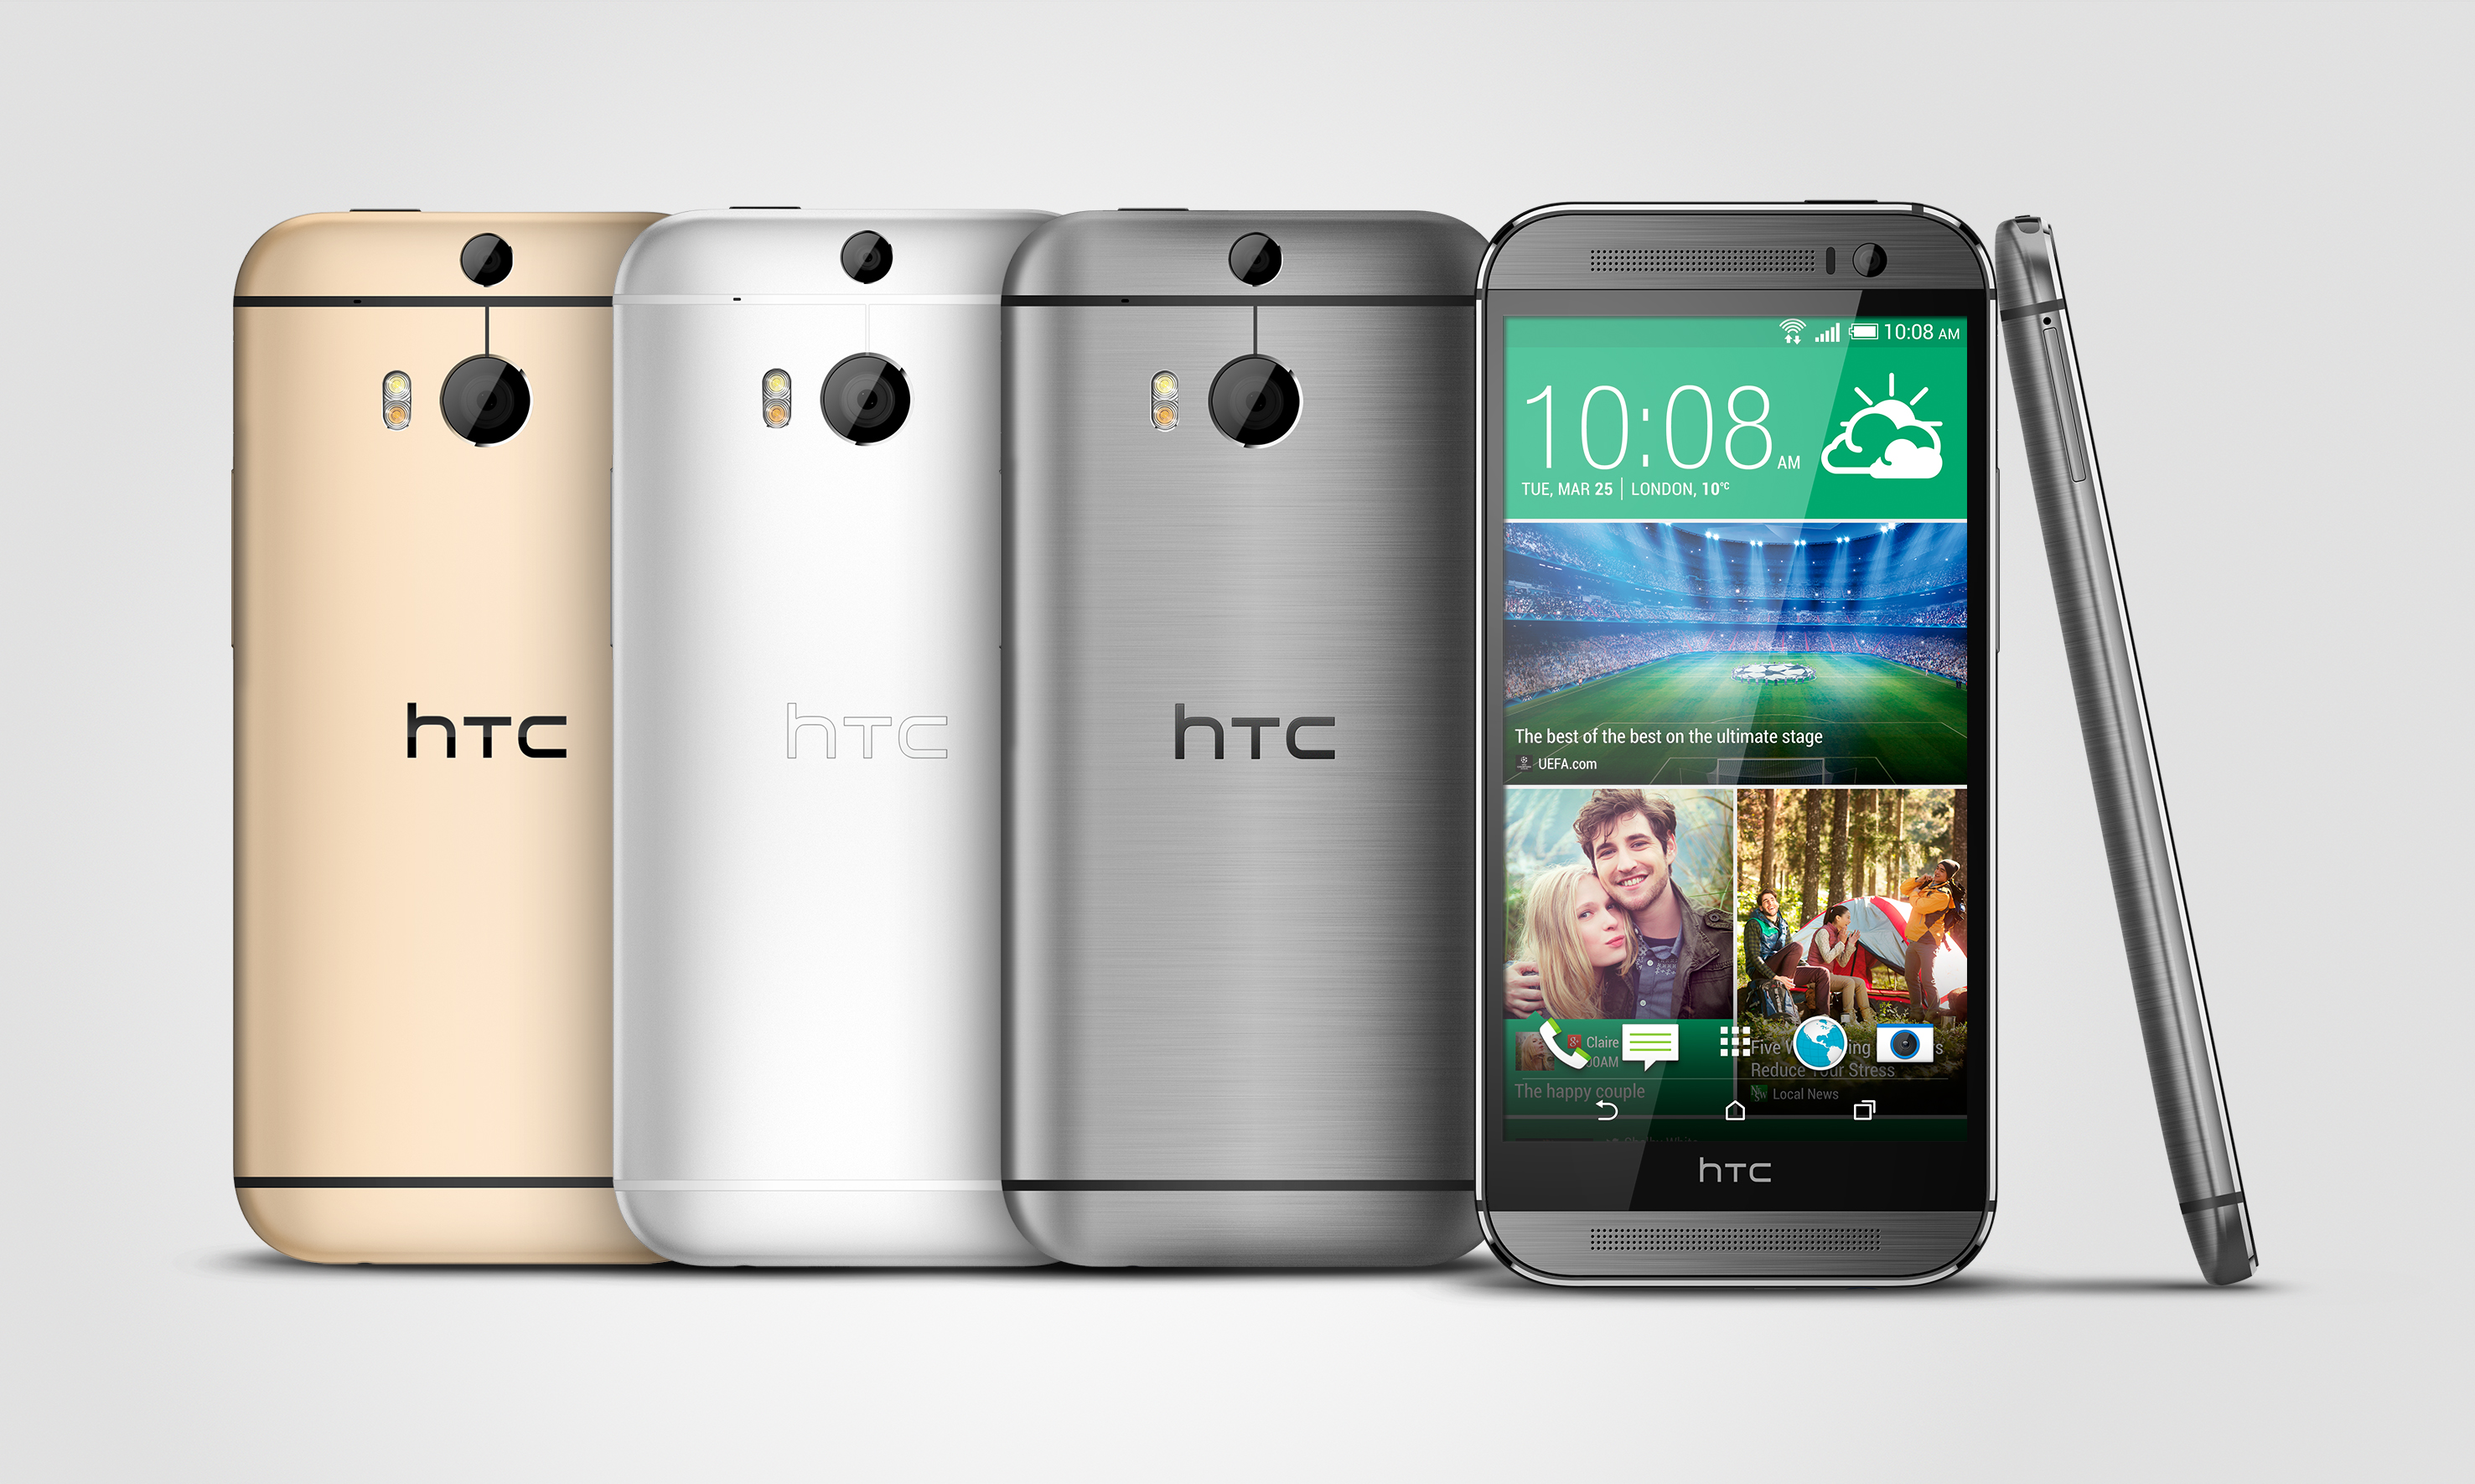 Htc One M8 Vs Samsung Galaxy S5 Specs Comparison